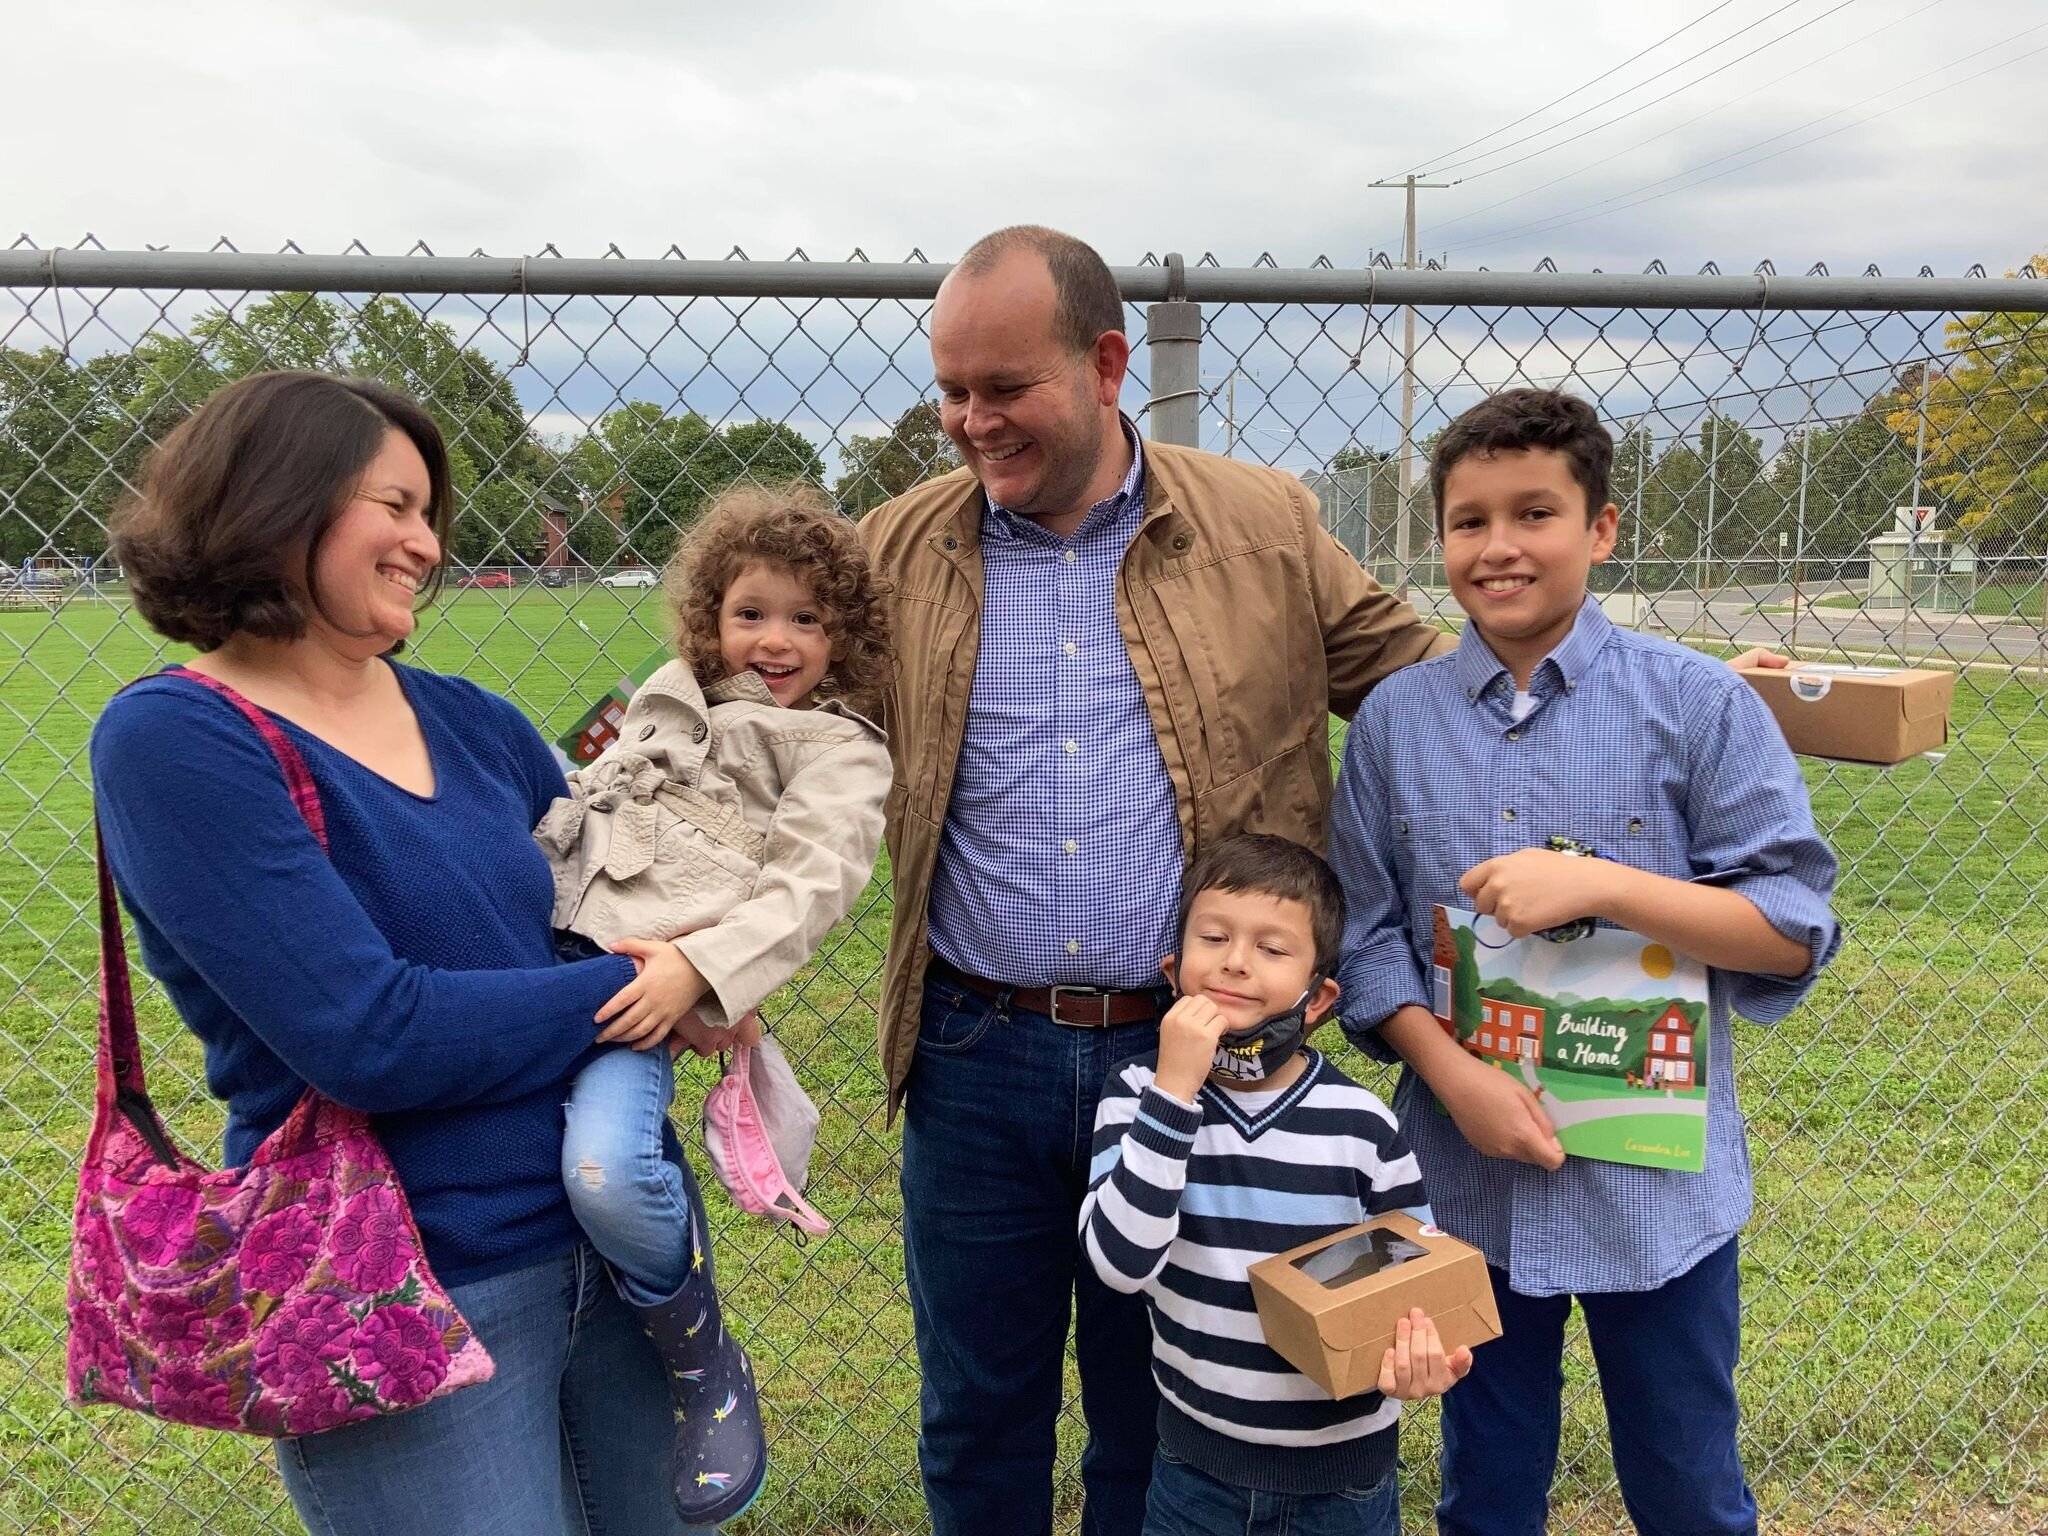 Jorge Escalera (far right), poses with his family at the book launch on Monday.  Escalera is one of six children whose story inspired Building a Home.  Photo by Angela O'Grady.